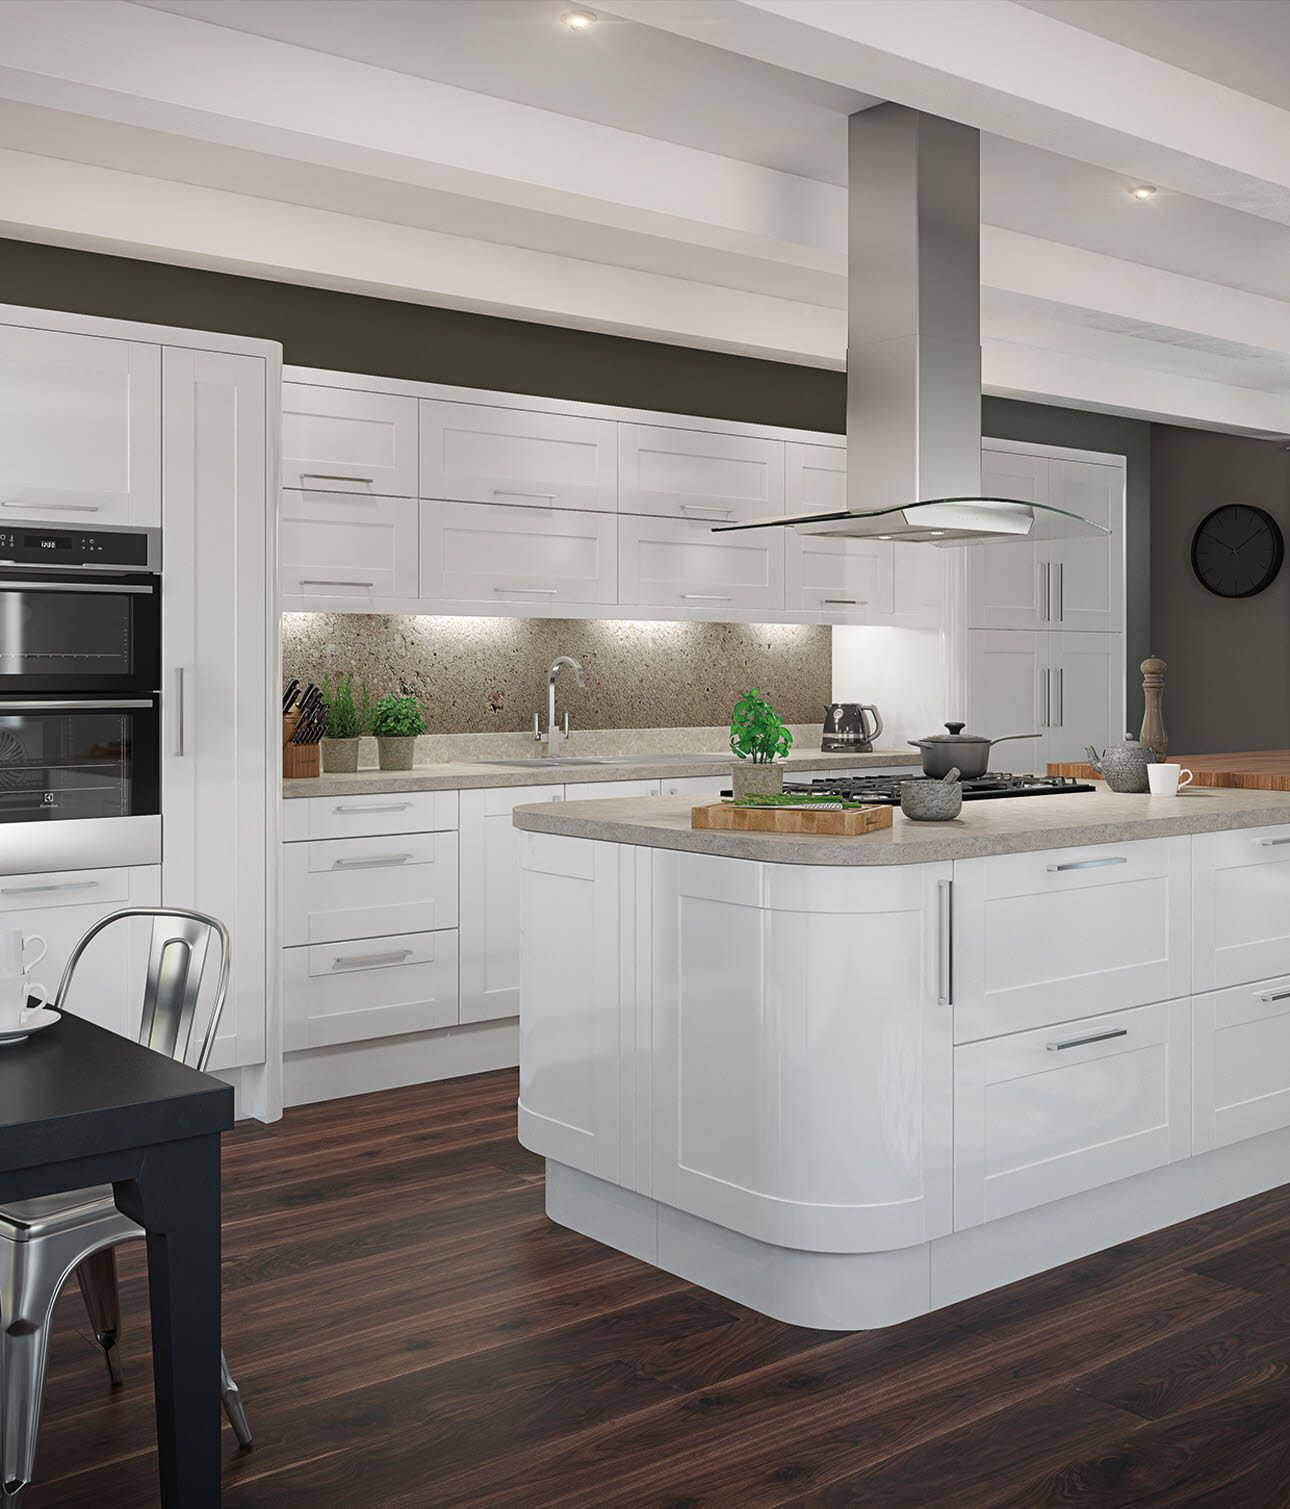 Matte Kitchen Cabinets Kitchen Cabinets Cabinet Finishes From Gloss Or Matt